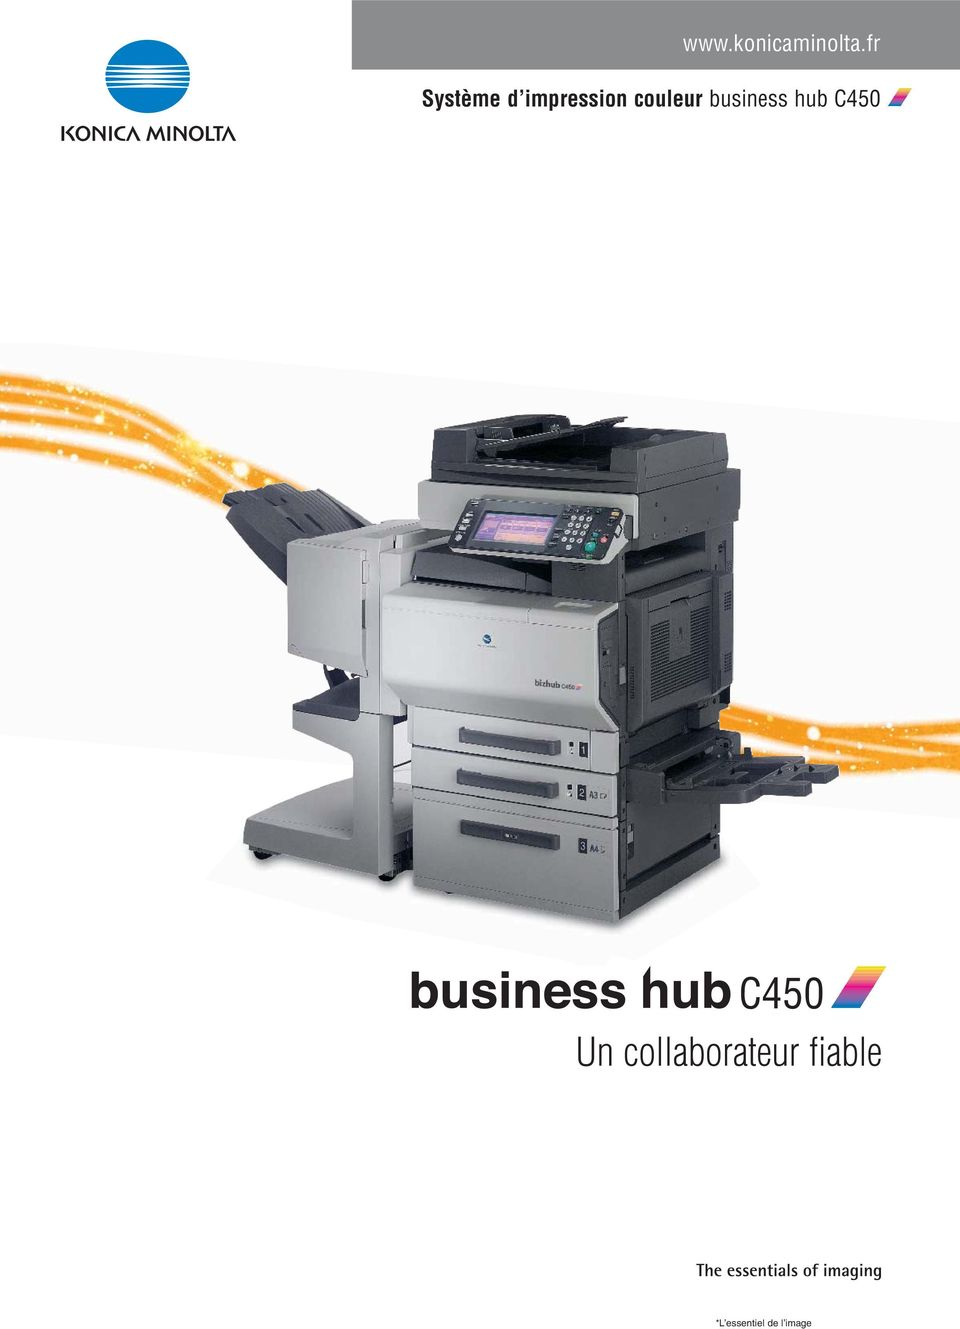 couleur business hub C450